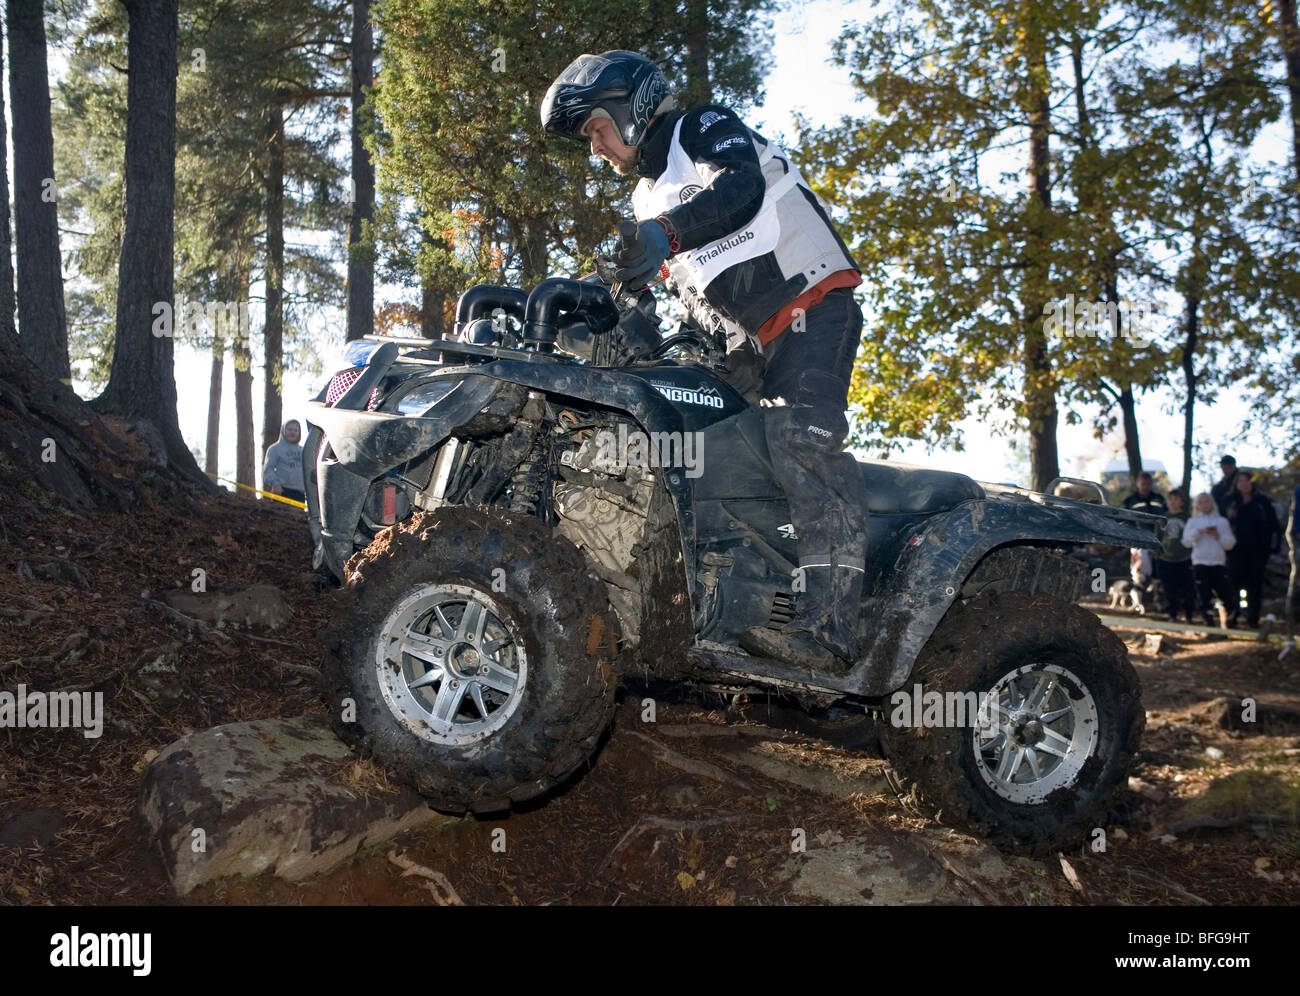 Man rides all-terrain vehicle (ATV) on rocky terrain in woods. Trial off-road biking. Sweden. - Stock Image